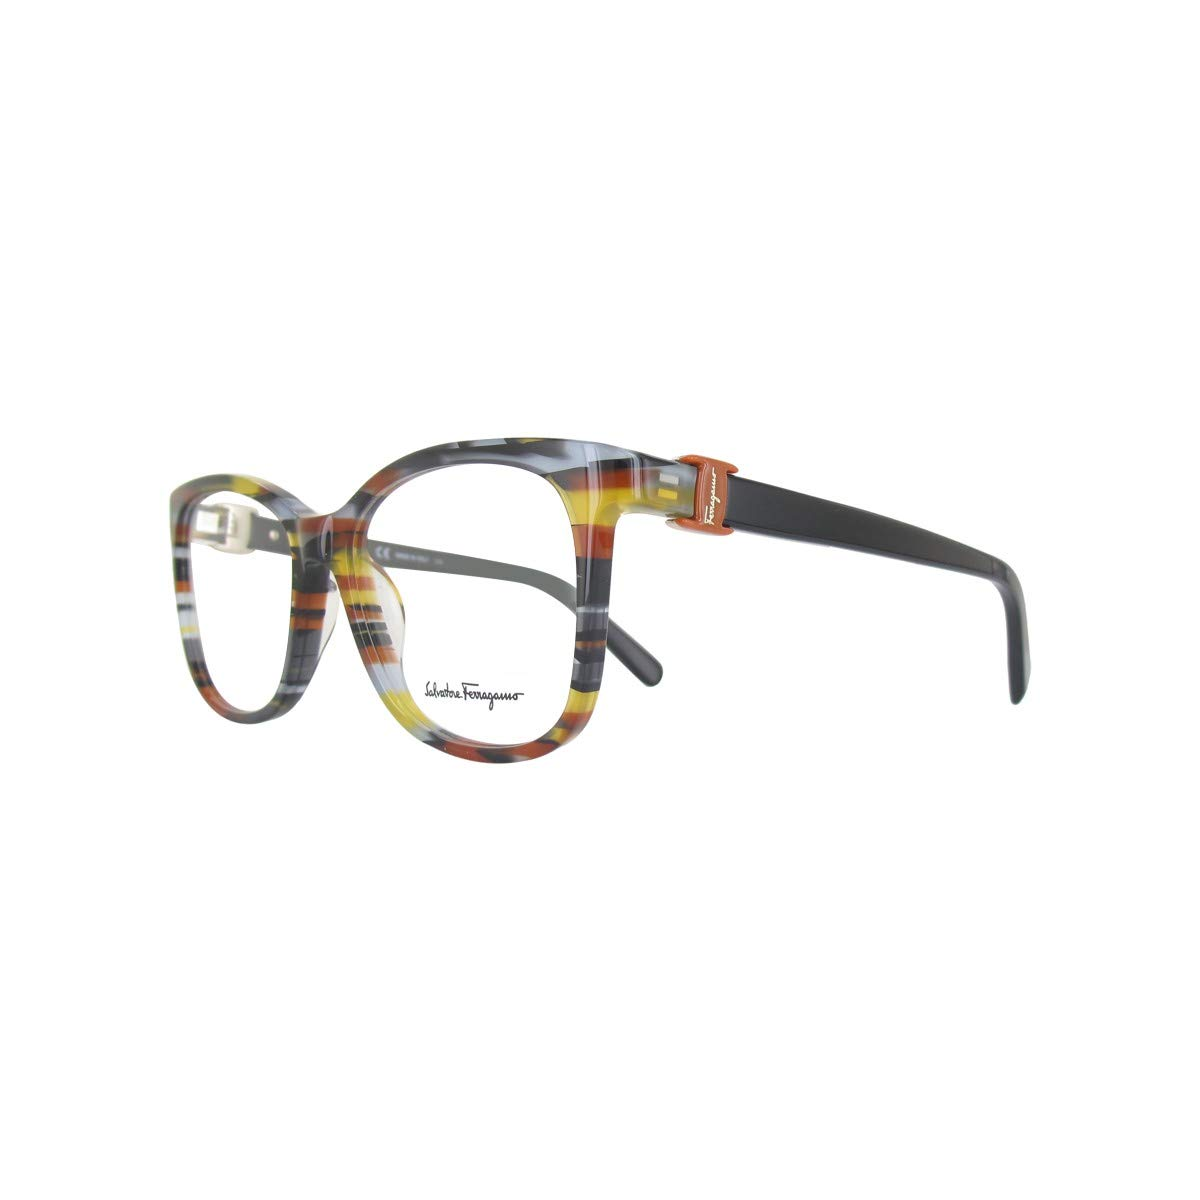 ce58e31157 Amazon.com  Eyeglasses FERRAGAMO SF 2760 999 GEOMETRIC BROWN GREY  Clothing